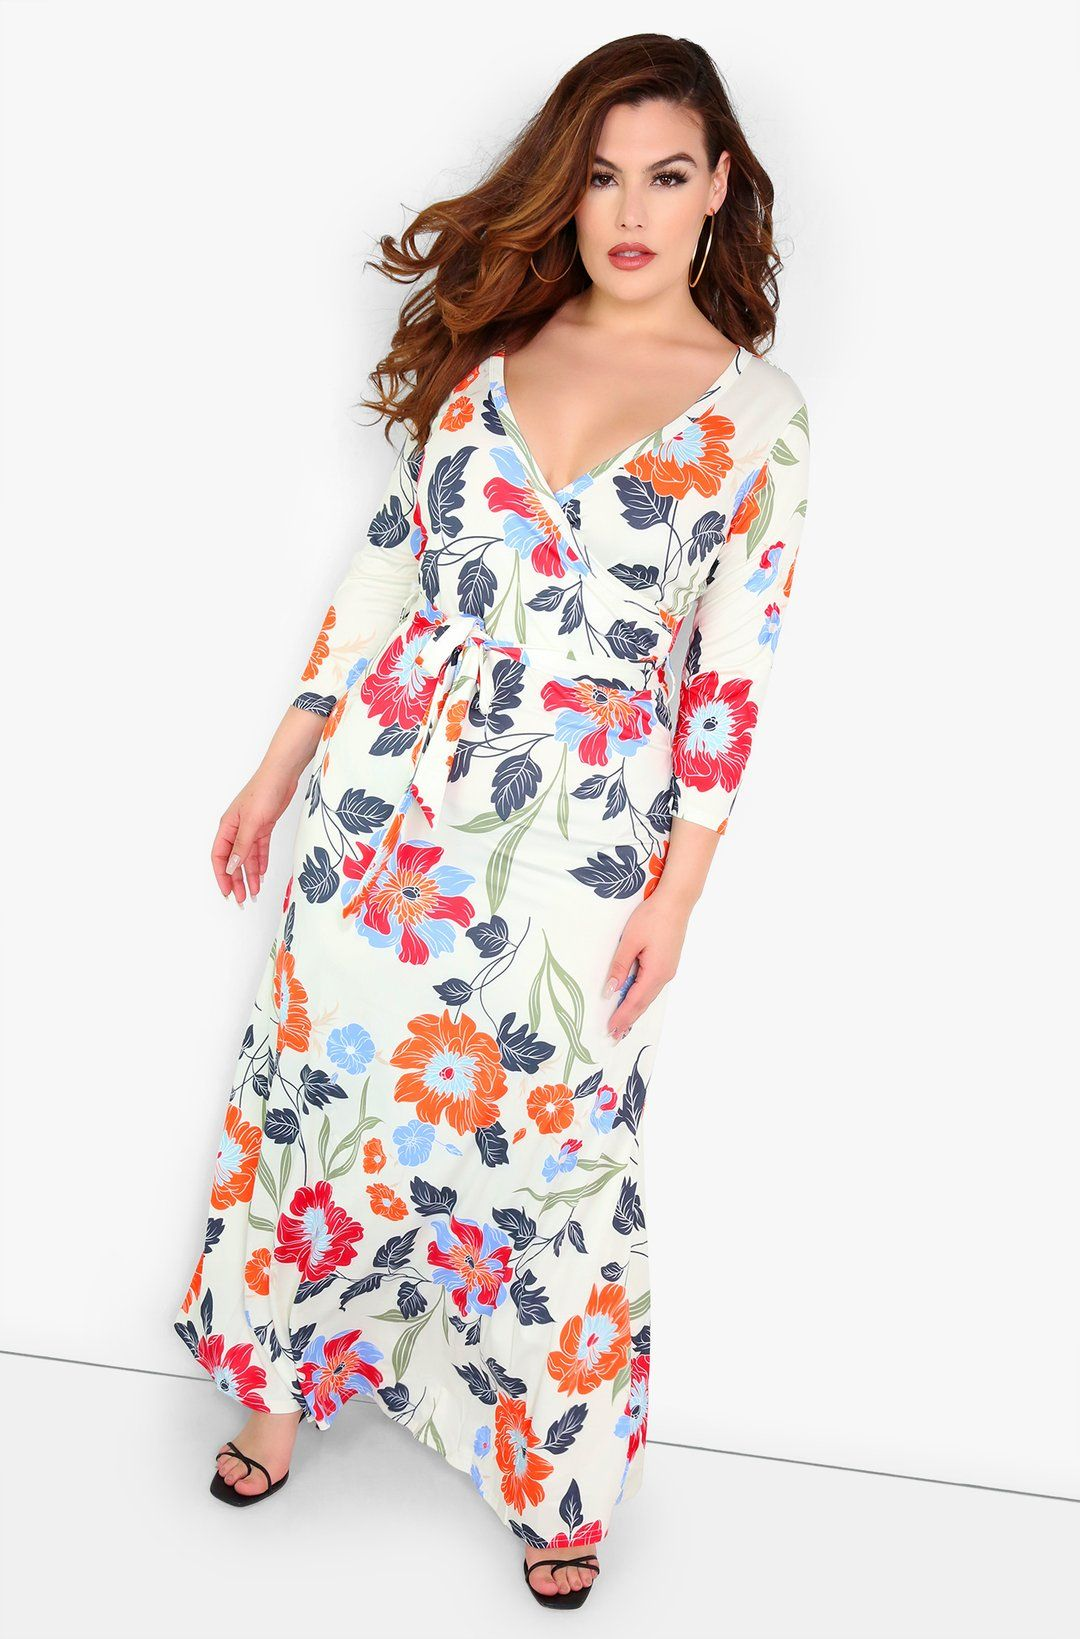 Orange Floral Maxi Dress Plus Sizes Available In Both Missy And Plus Sizes Shop Rebdolls For The Latest In Trendy Af Maxi Dress With Sleeves Dresses Fashion [ 1639 x 1080 Pixel ]